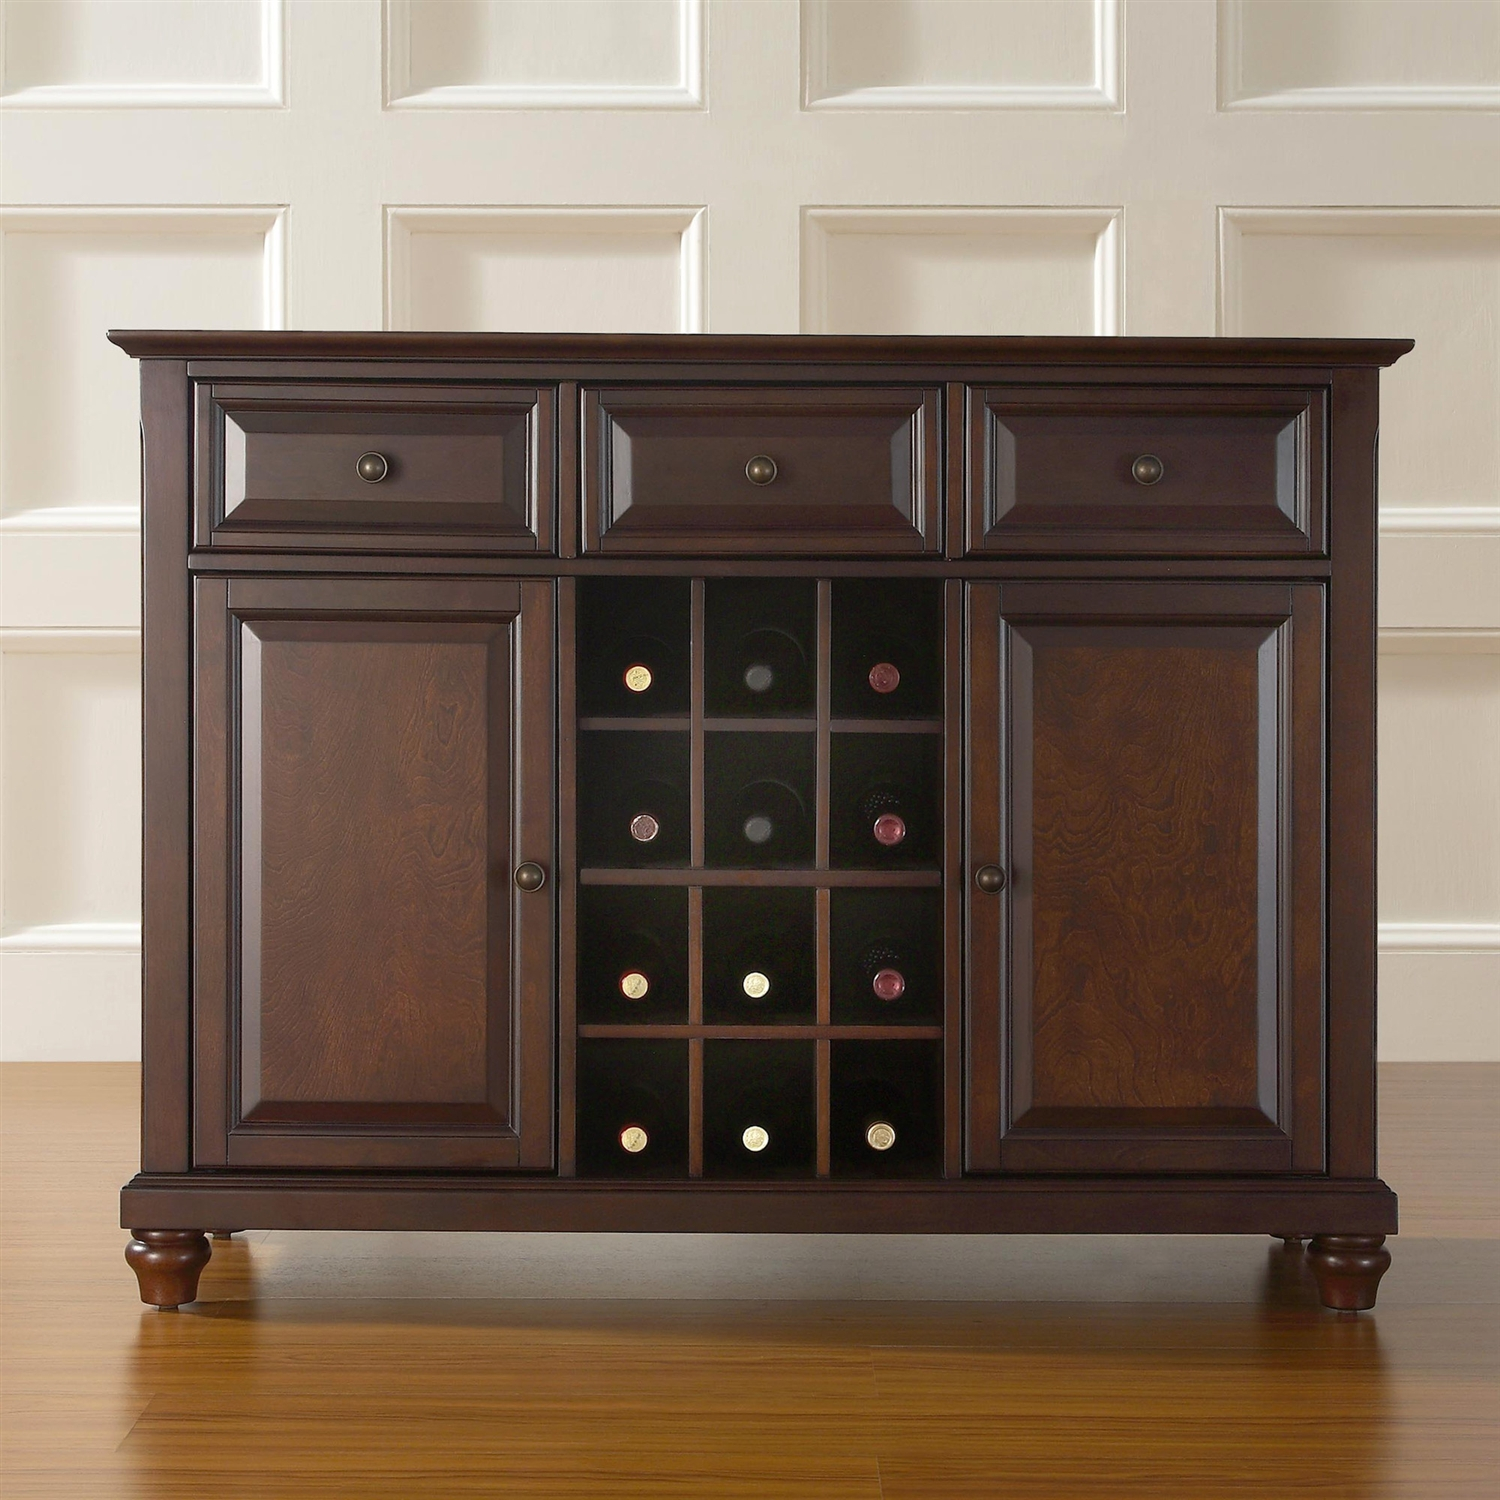 10 Deep Sideboard Buffet Table ~ Creativeworks home decor sideboards buffets